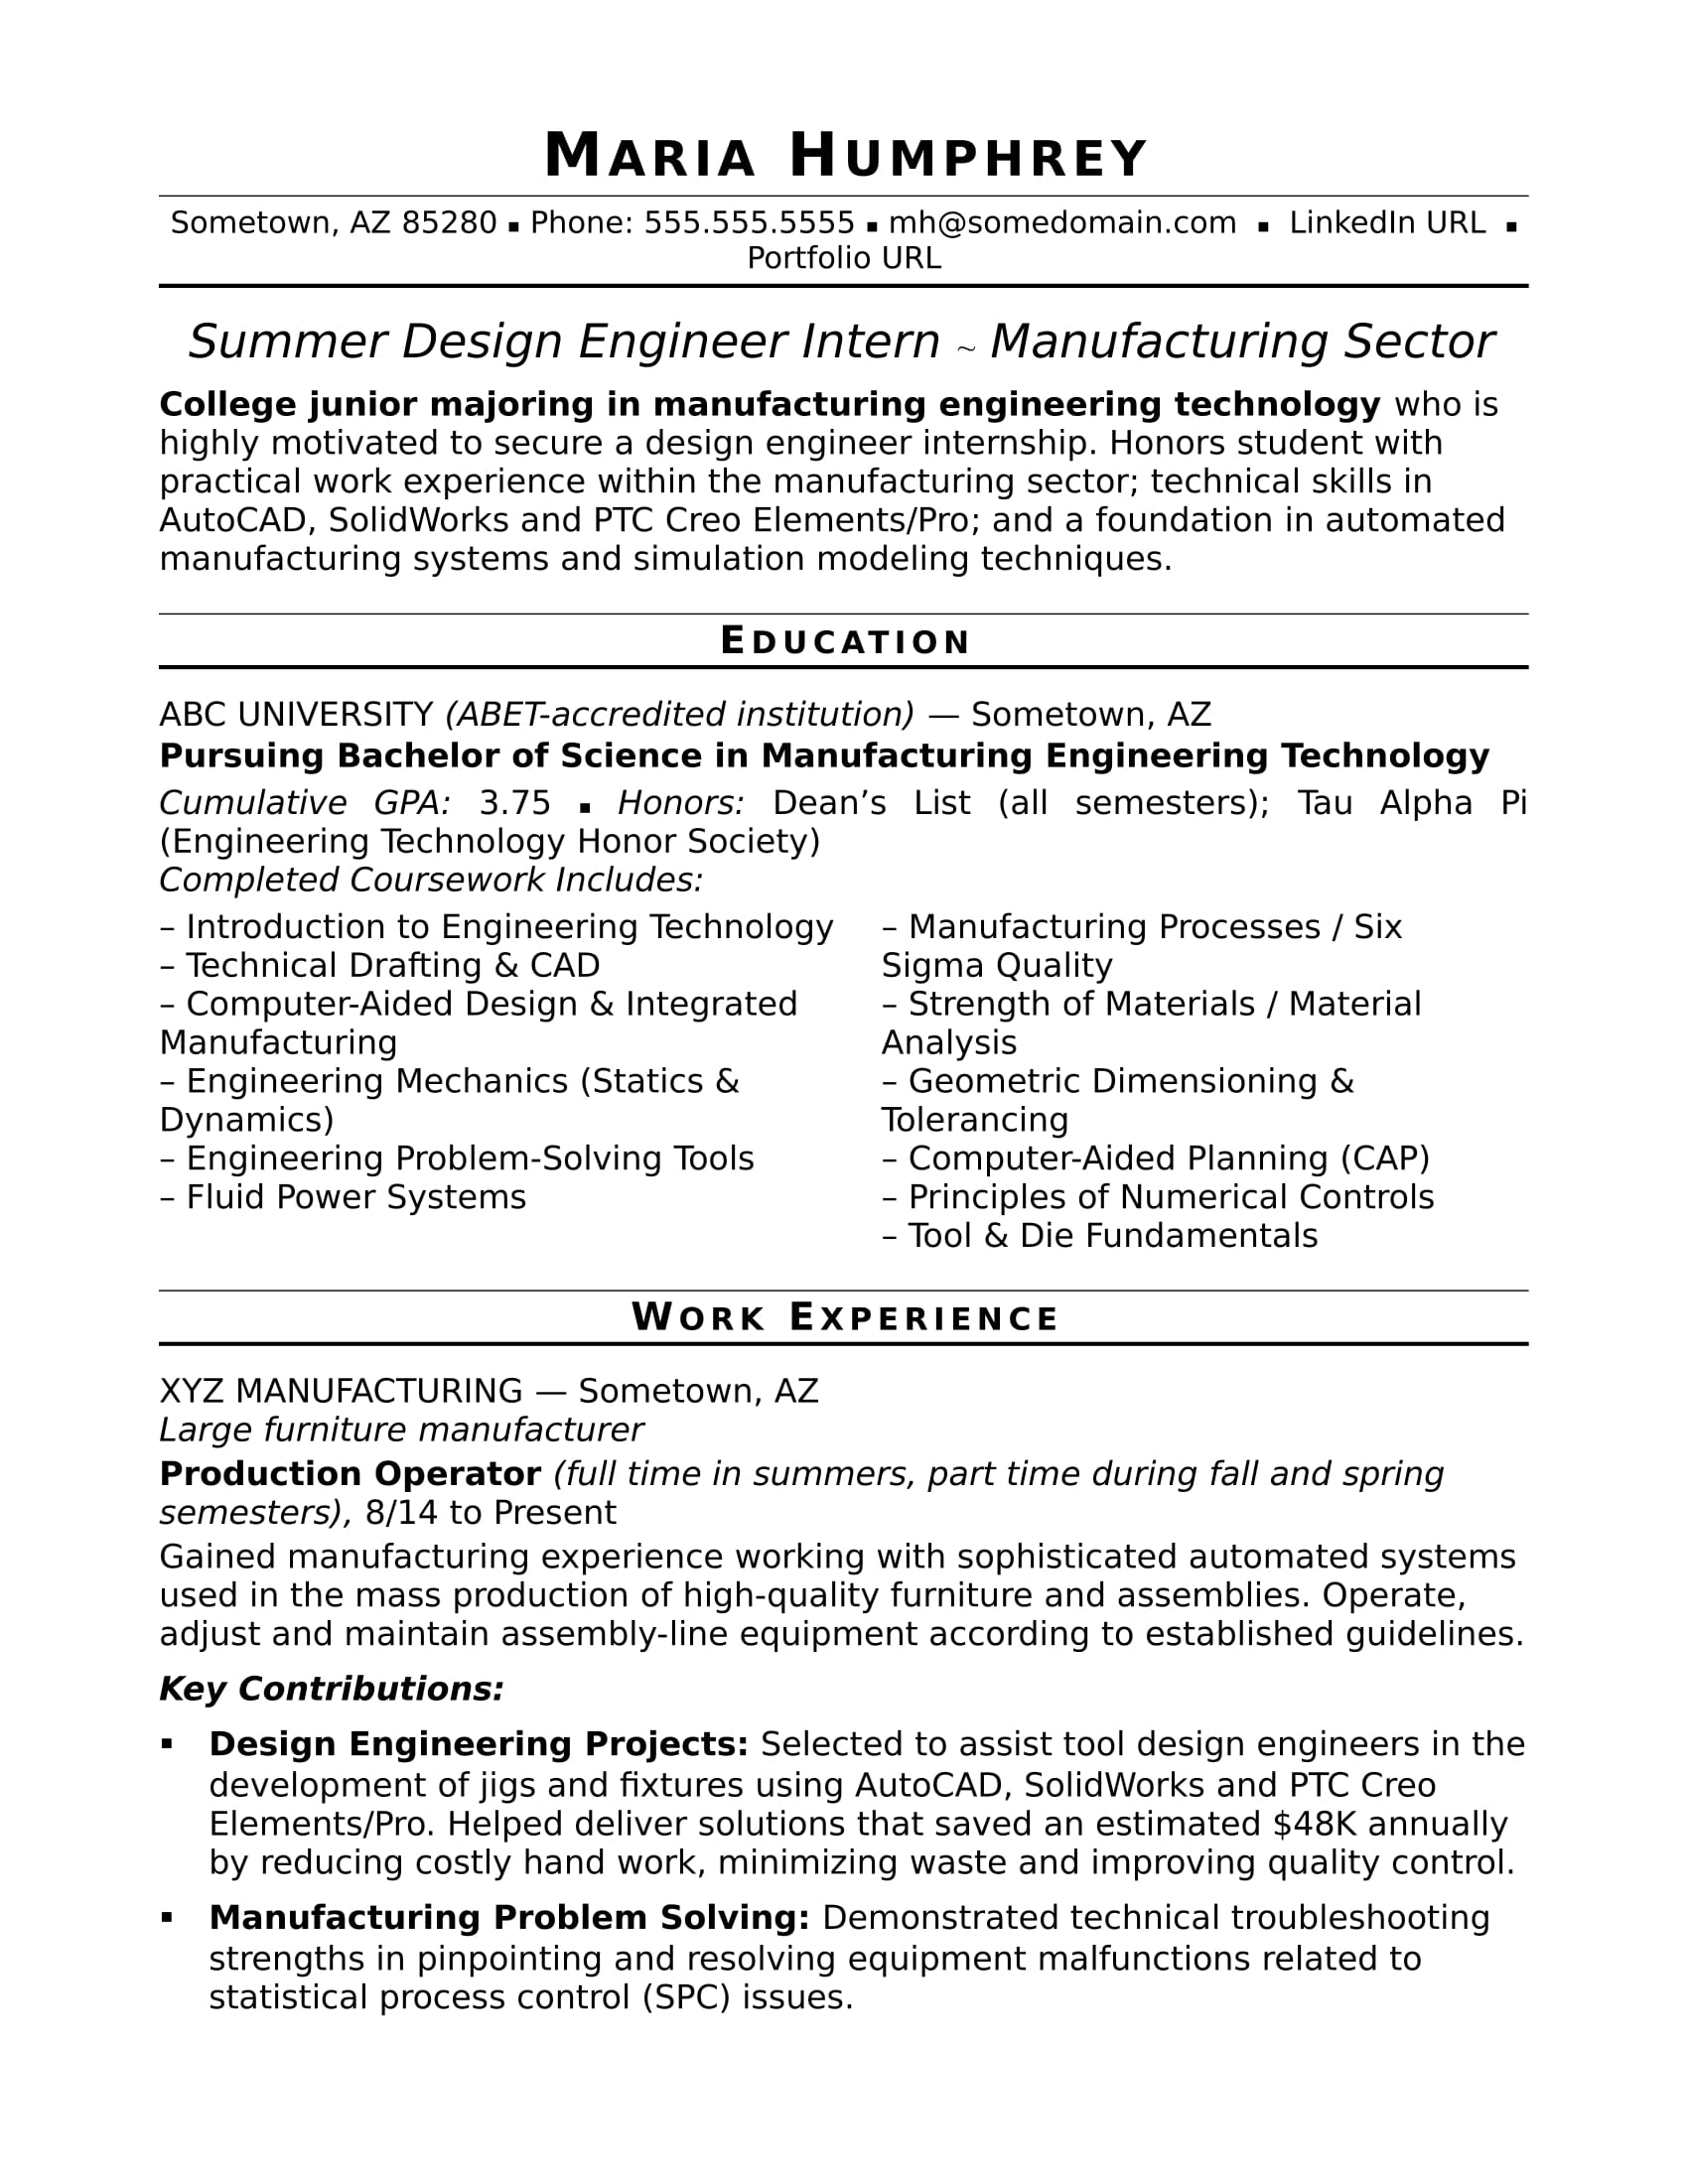 sample resume format for internship